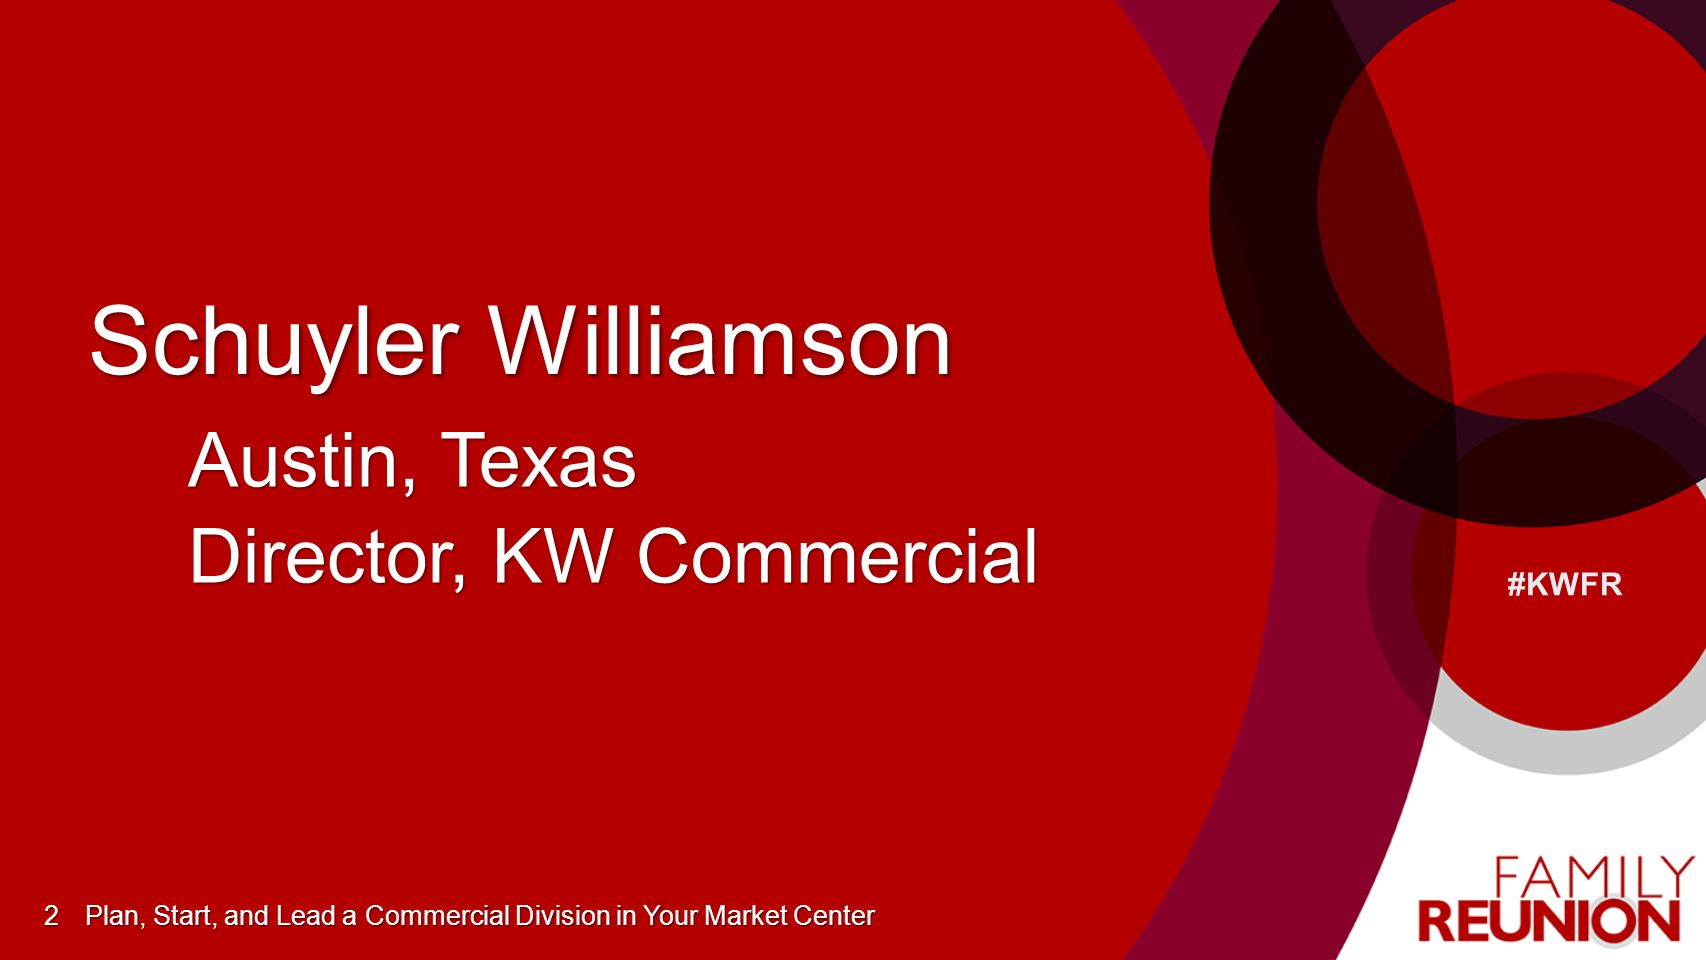 #KWFR Schuyler Williamson 2 Austin, Texas Director, KW Commercial Plan, Start, and Lead a Commercial Division in Your Market Center